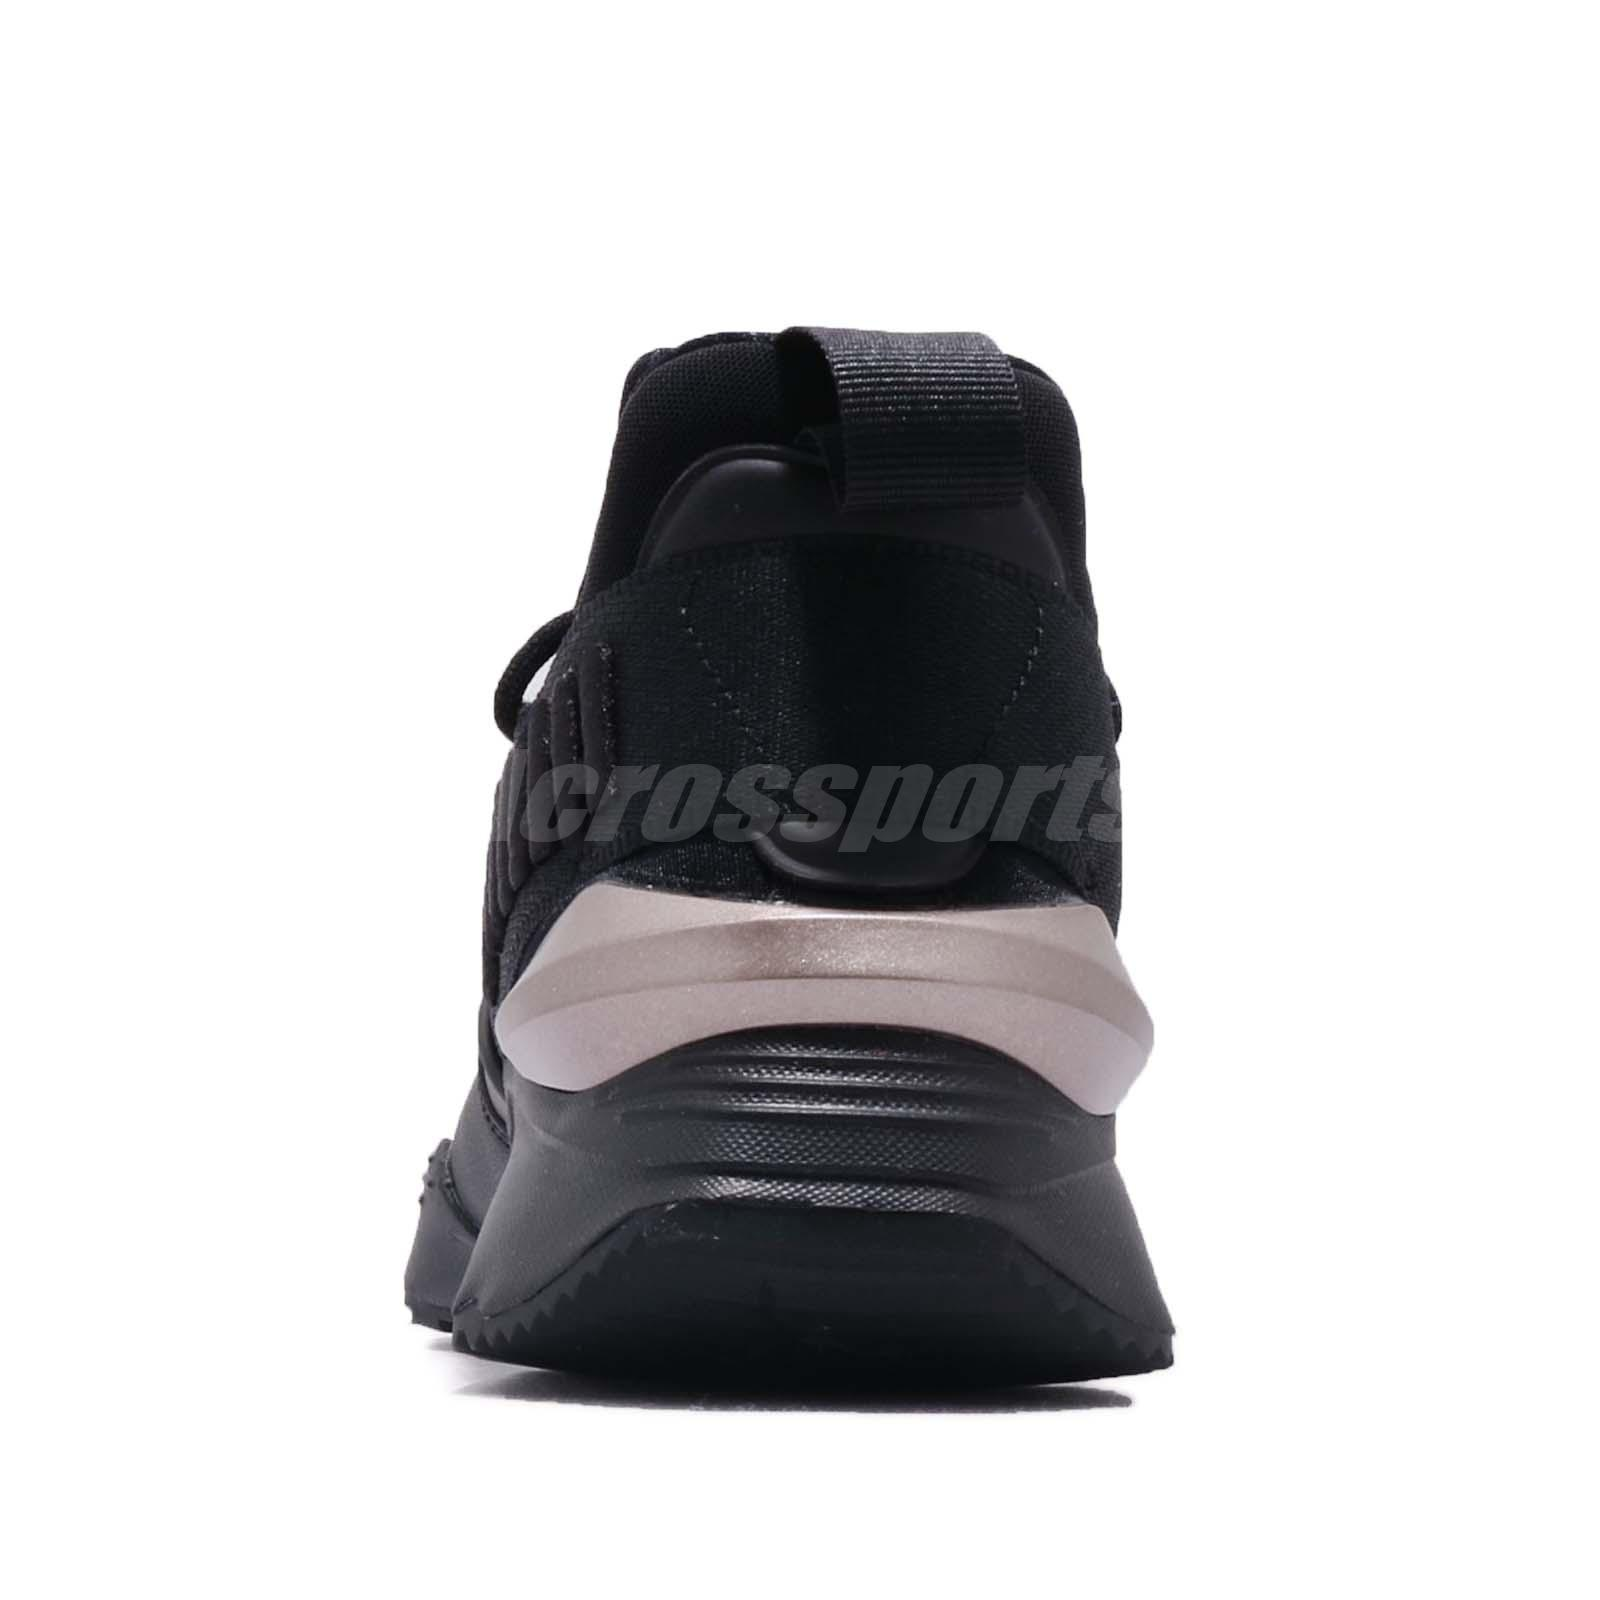 Puma Muse Maia Luxe Wns Black Women Running Casual Lifestyle Shoes ... 53f8b6e29